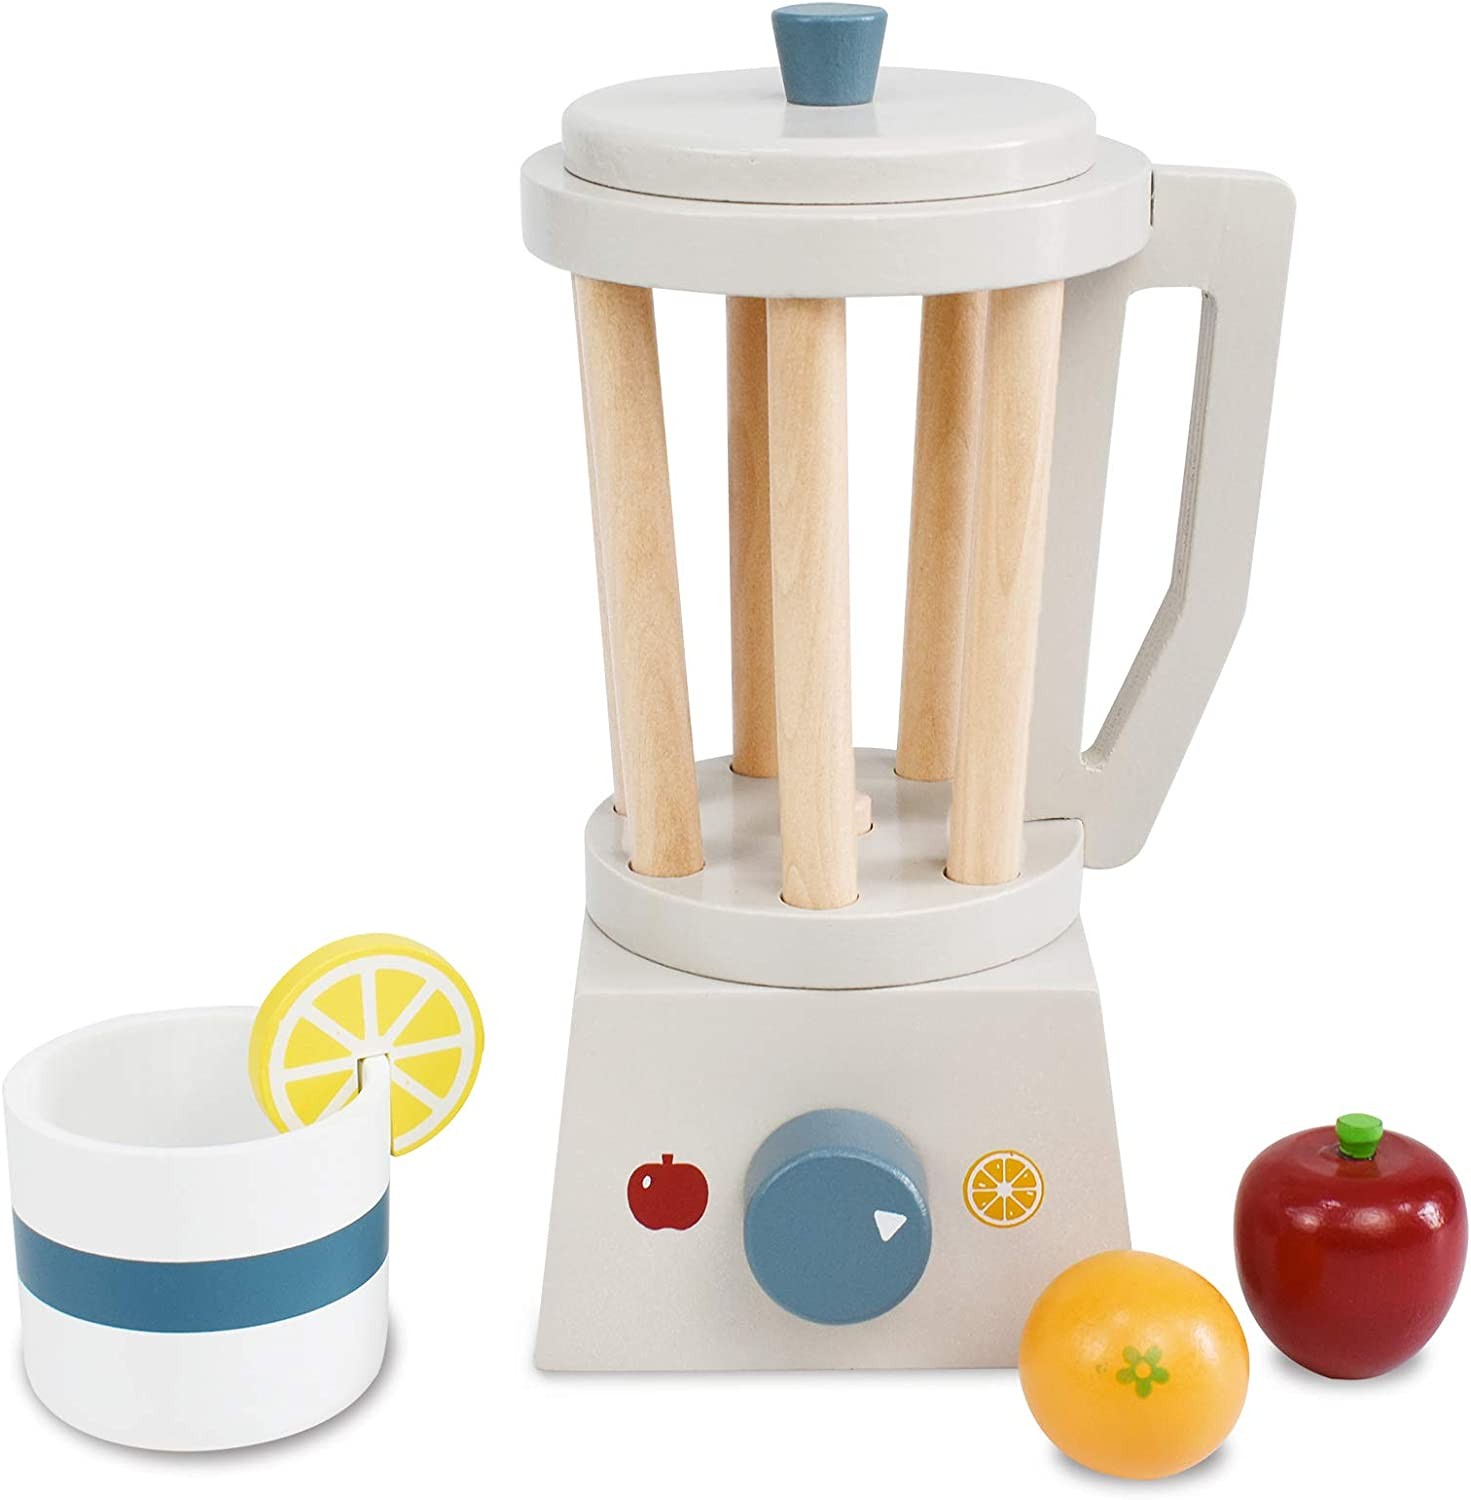 PairPear Play Kitchen Pretend Blender Smoothie Maker - Wooden Toy Mixer Play Food with Accessories Apple Orange Fruit Juice